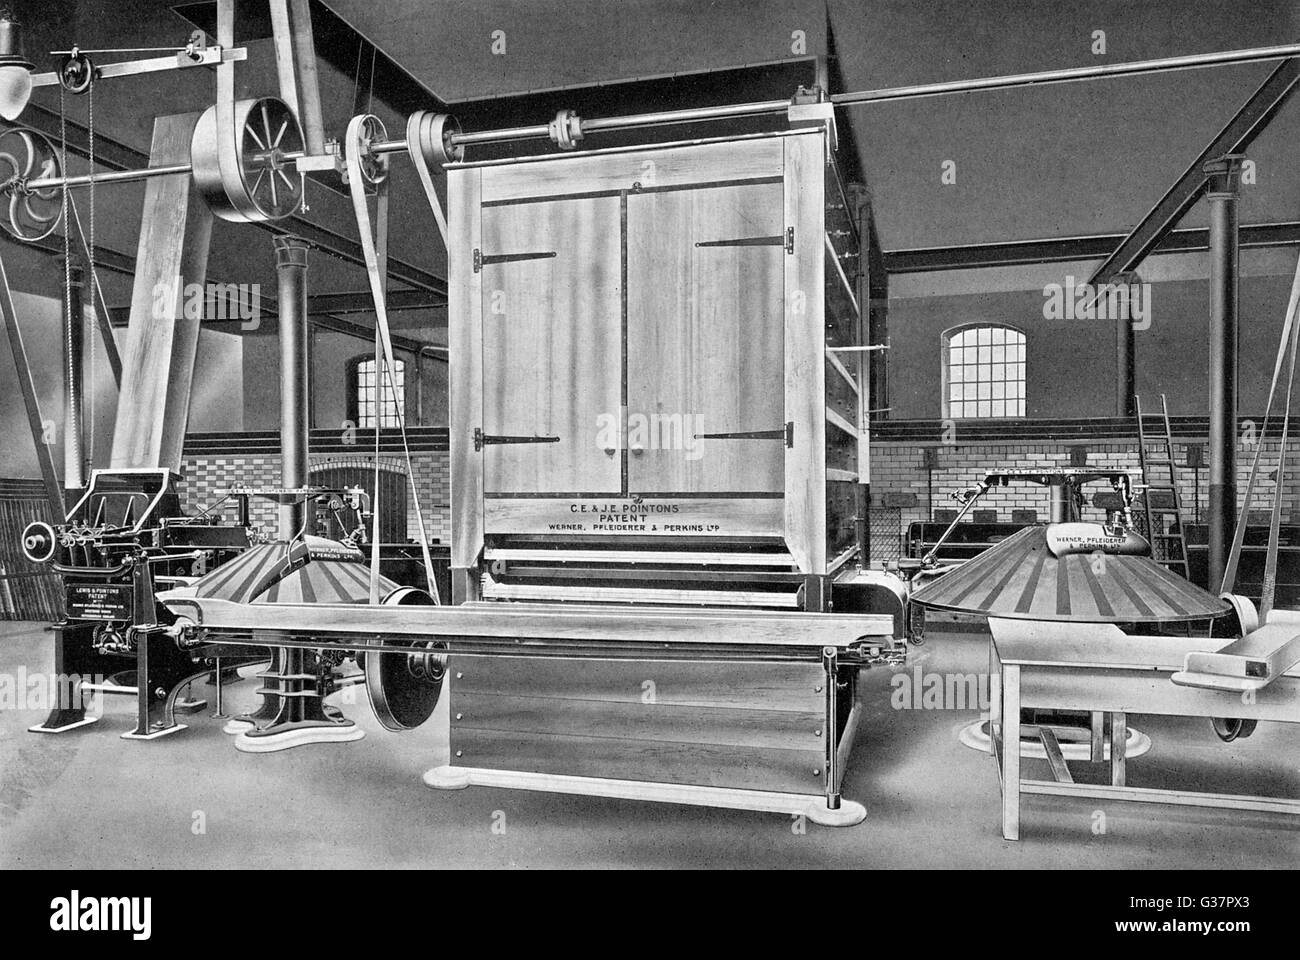 A complete automatic bread- making plant, constructed by  Werner, Pfleiderer & Perkins        Date: 1909 - Stock Image